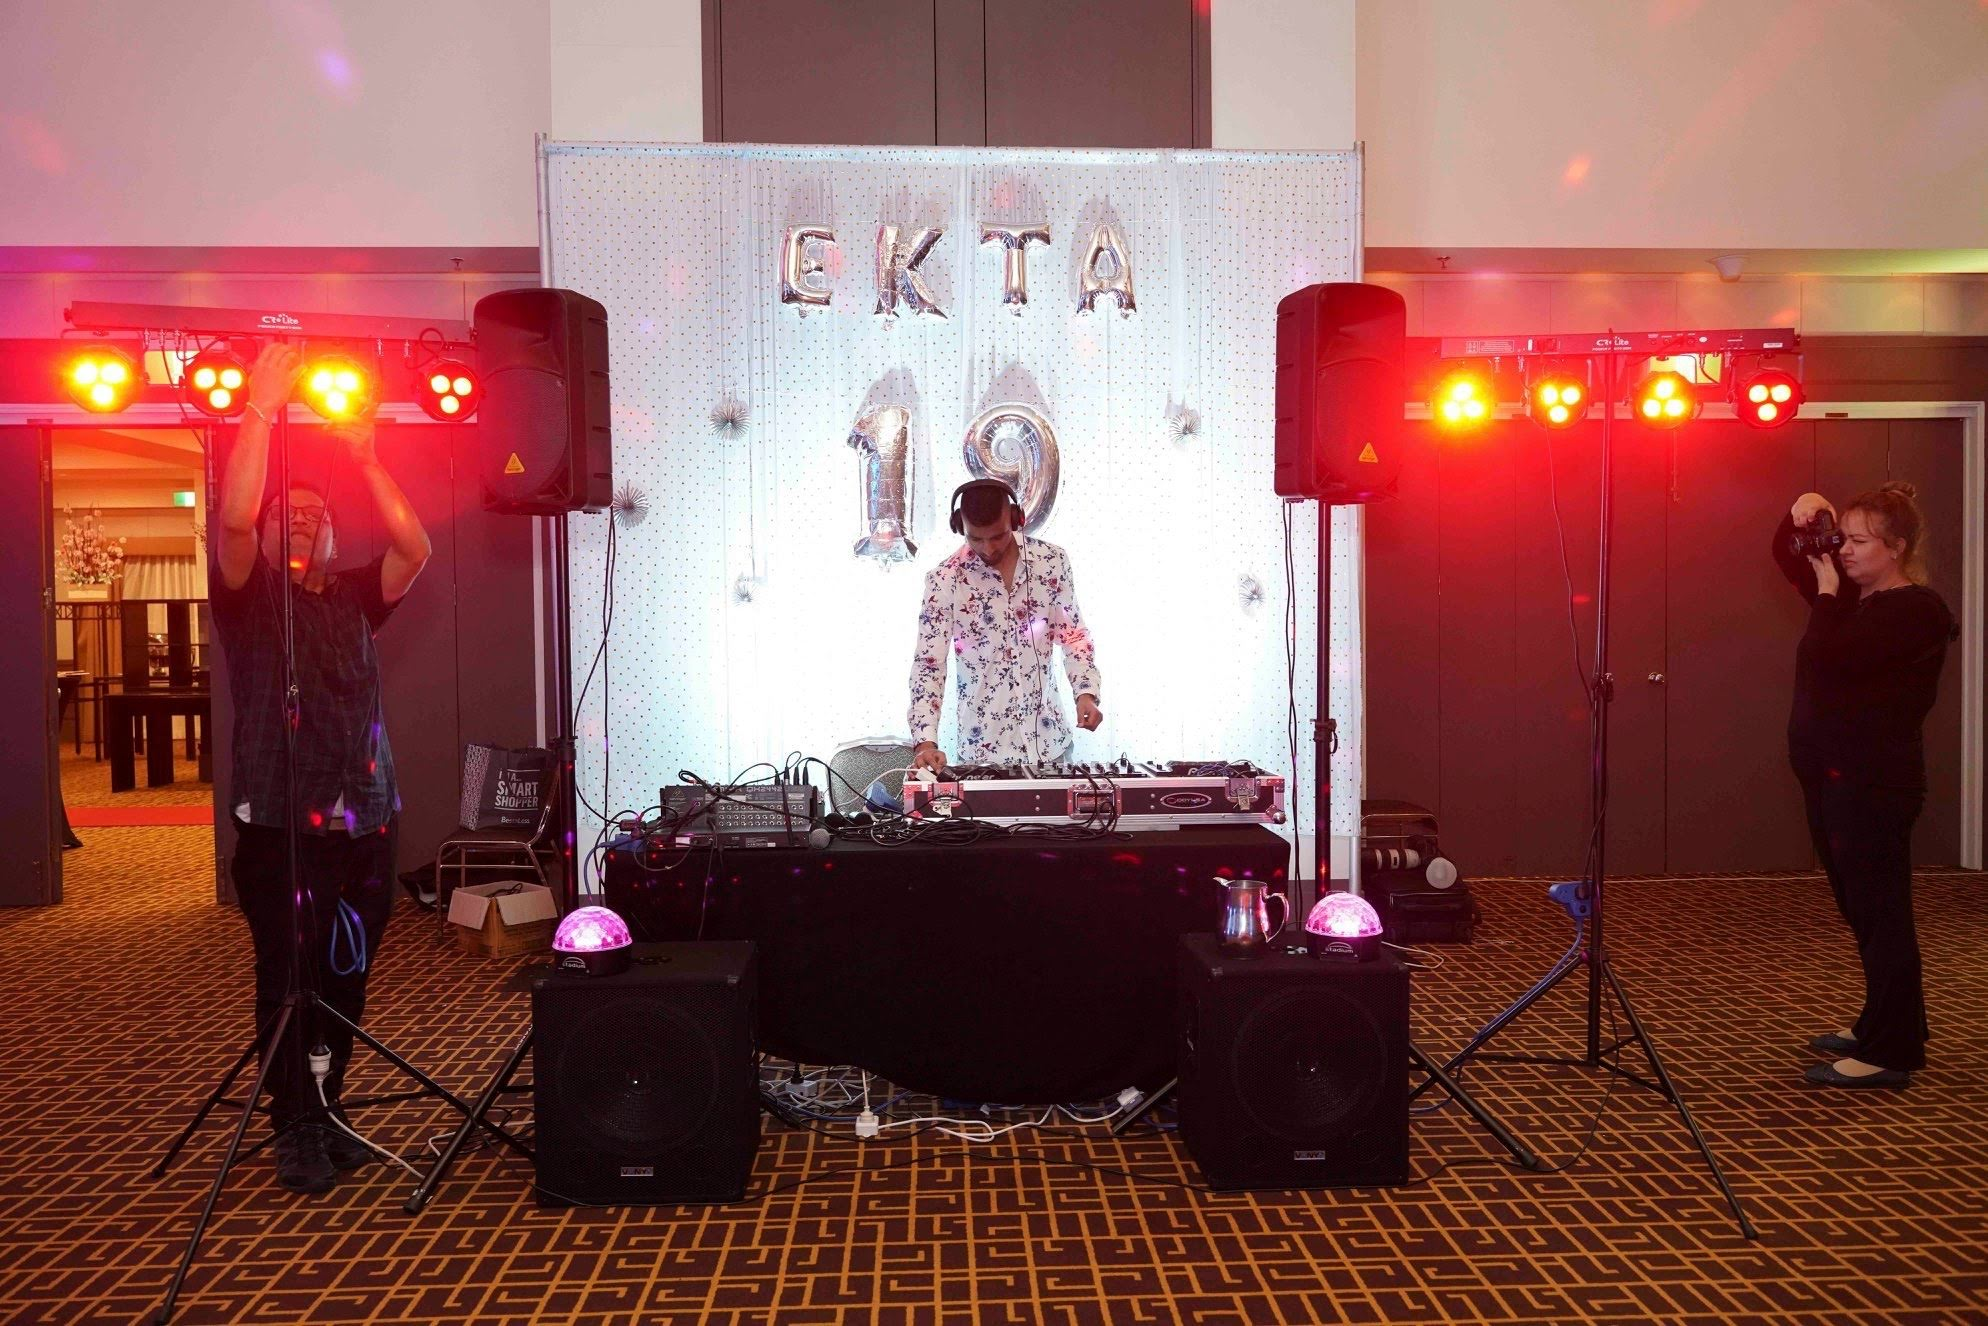 Ekta University Ball (Bollywood Style) - Canberra - Vintage Events